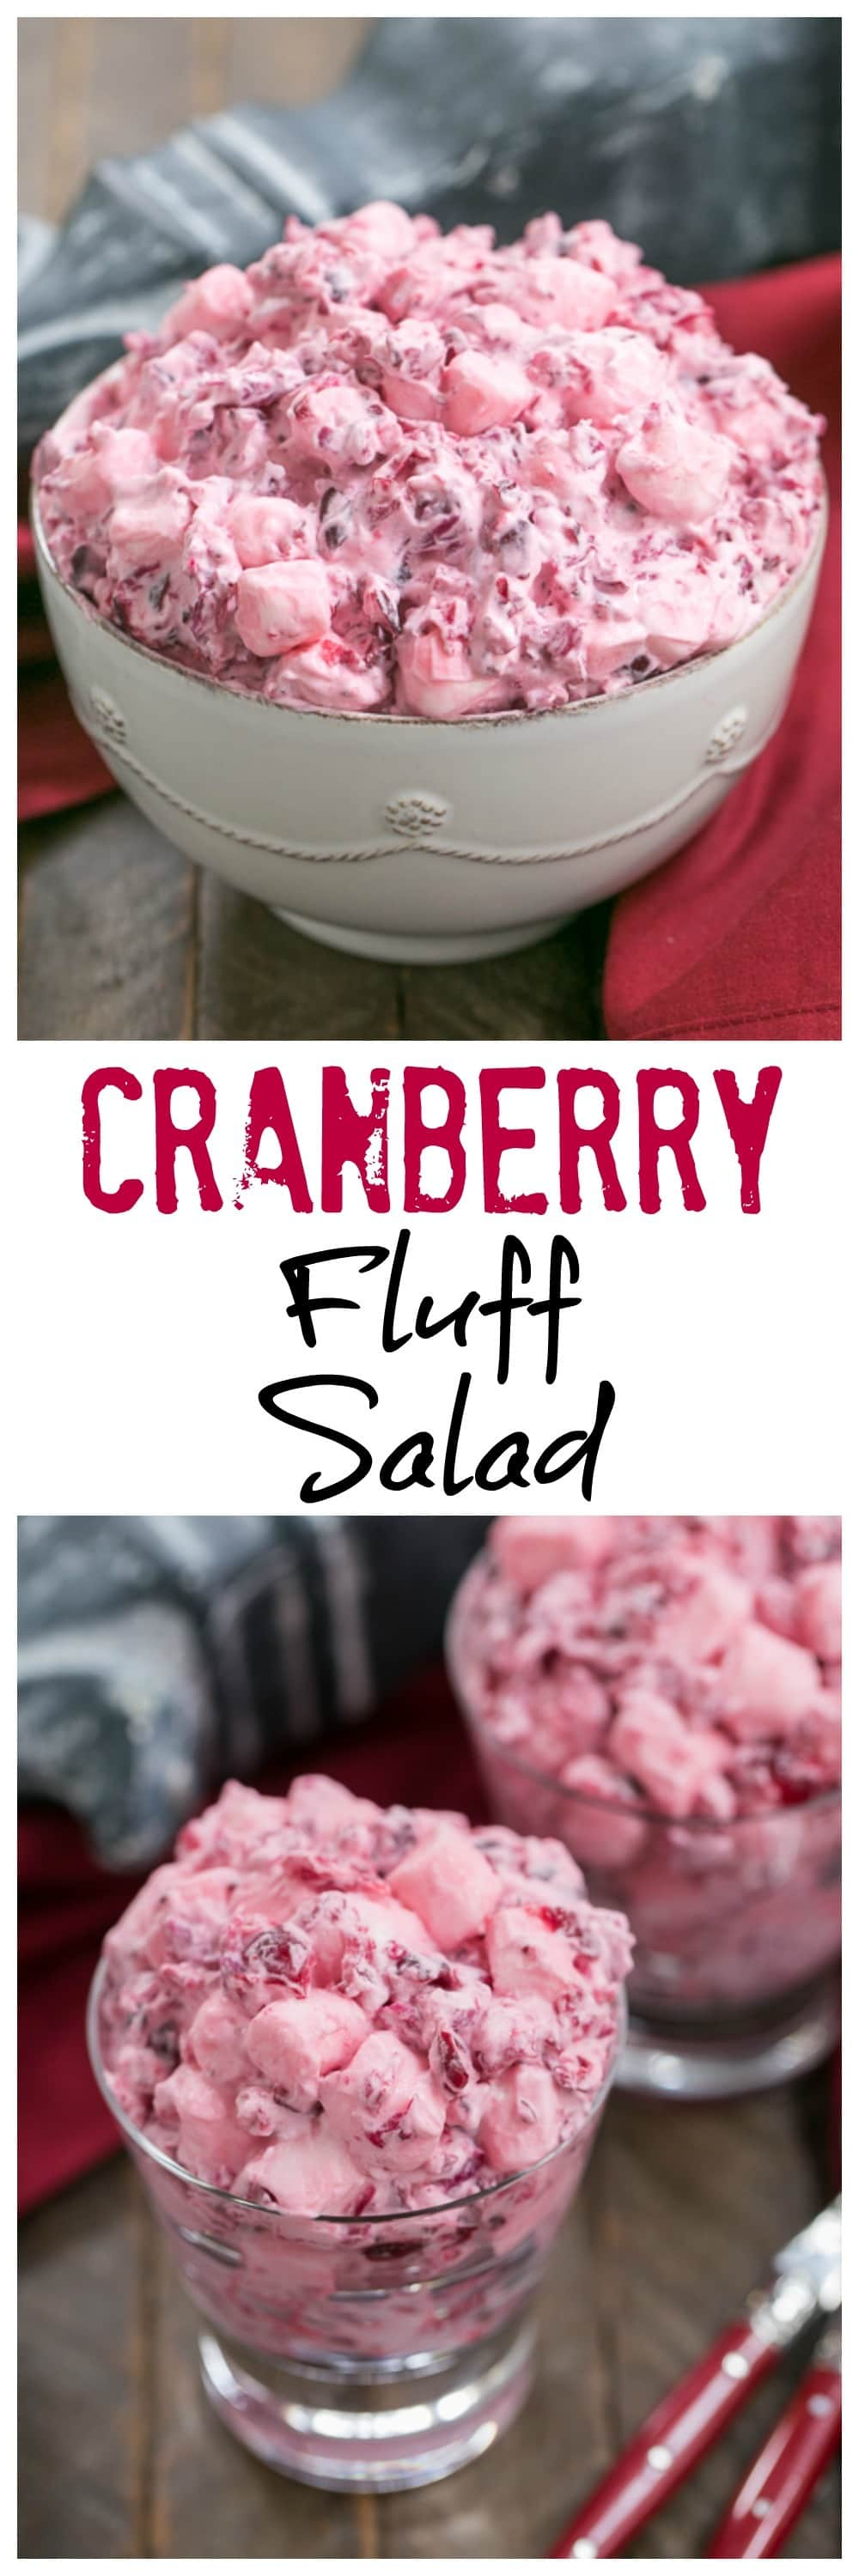 Cranberry Fluff Salad - A simple version of the classic Thanksgiving side dish! #thanksgiving #holidayrecipe #thanksgivingsidedish #cranberrysalad #cranberryrecipe